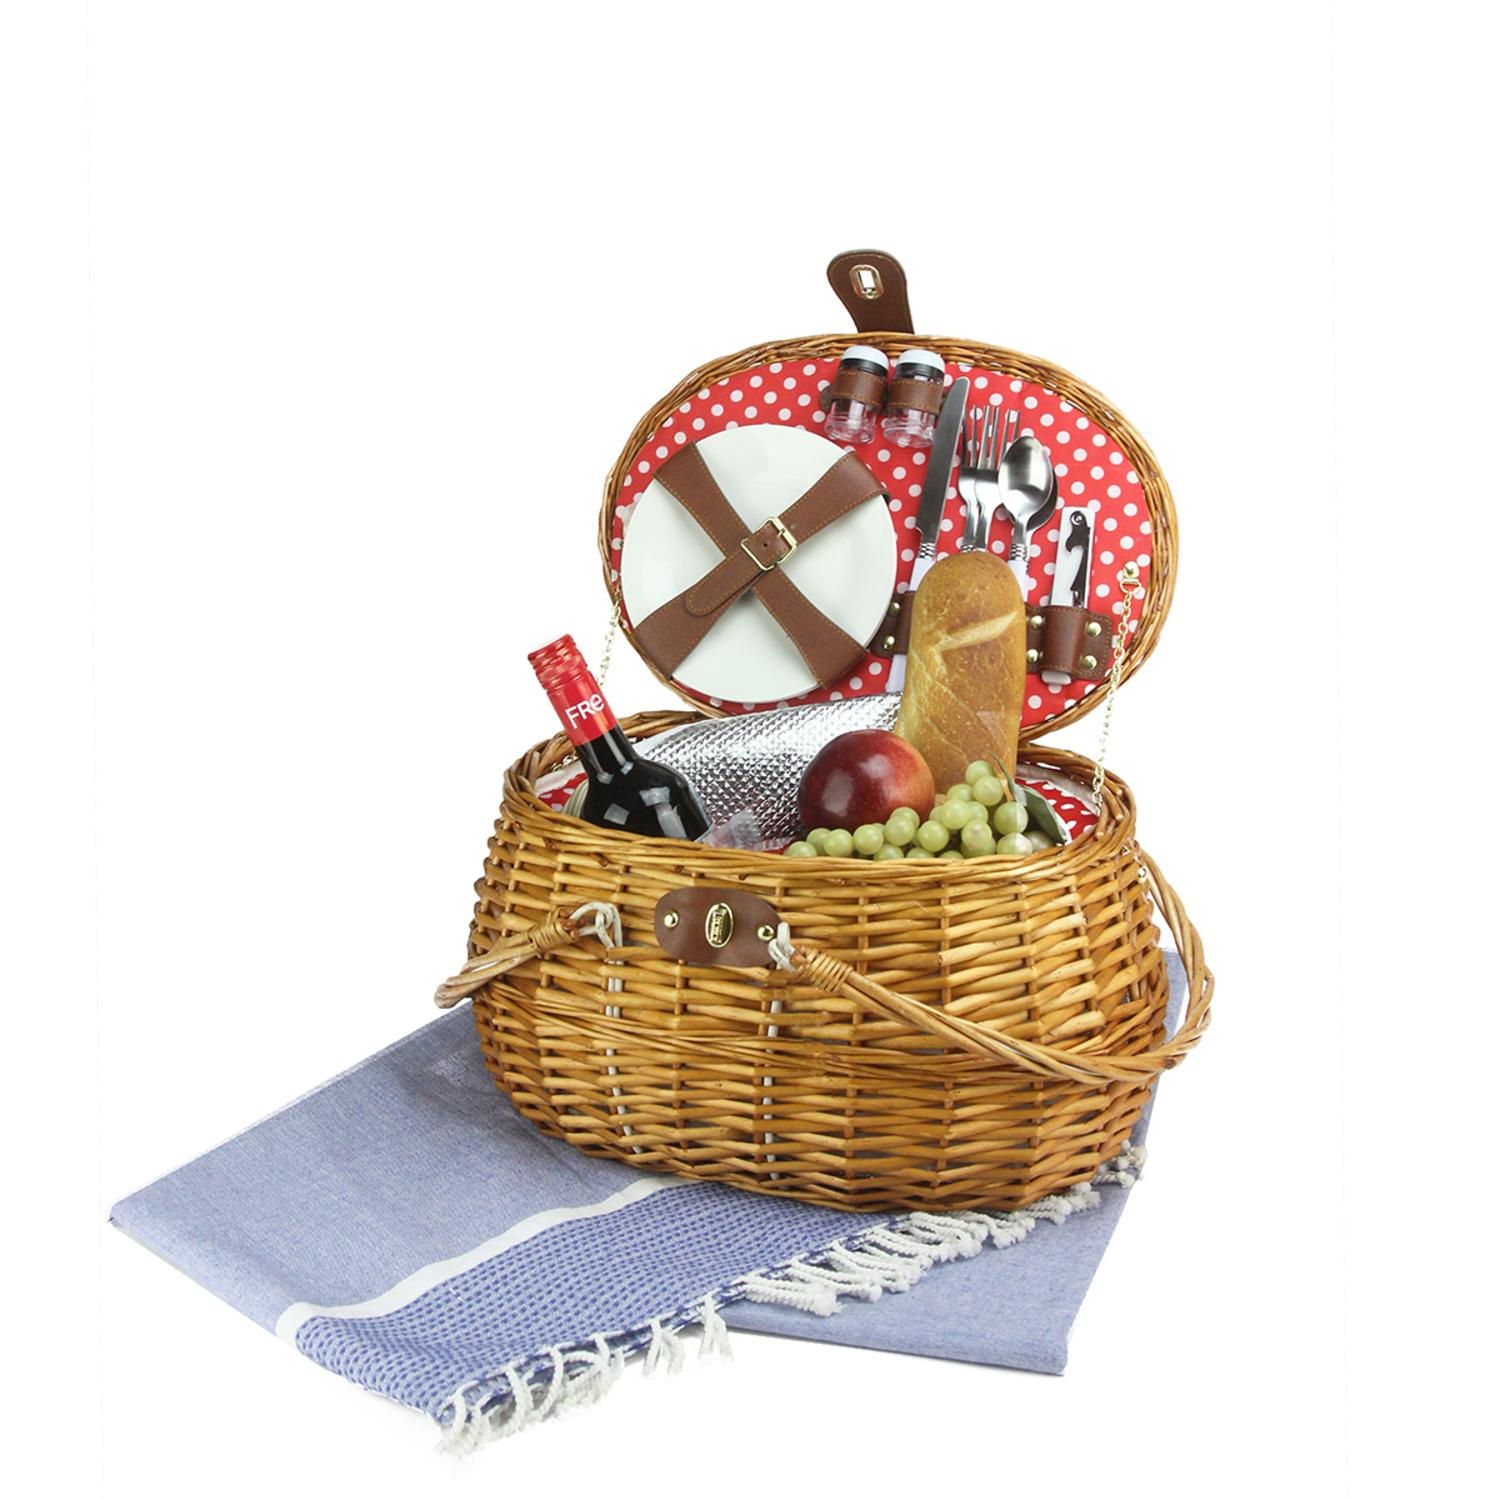 Northlight 2-Person Hand Woven Honey Willow Polka Dotted Picnic Basket Set With Accessories